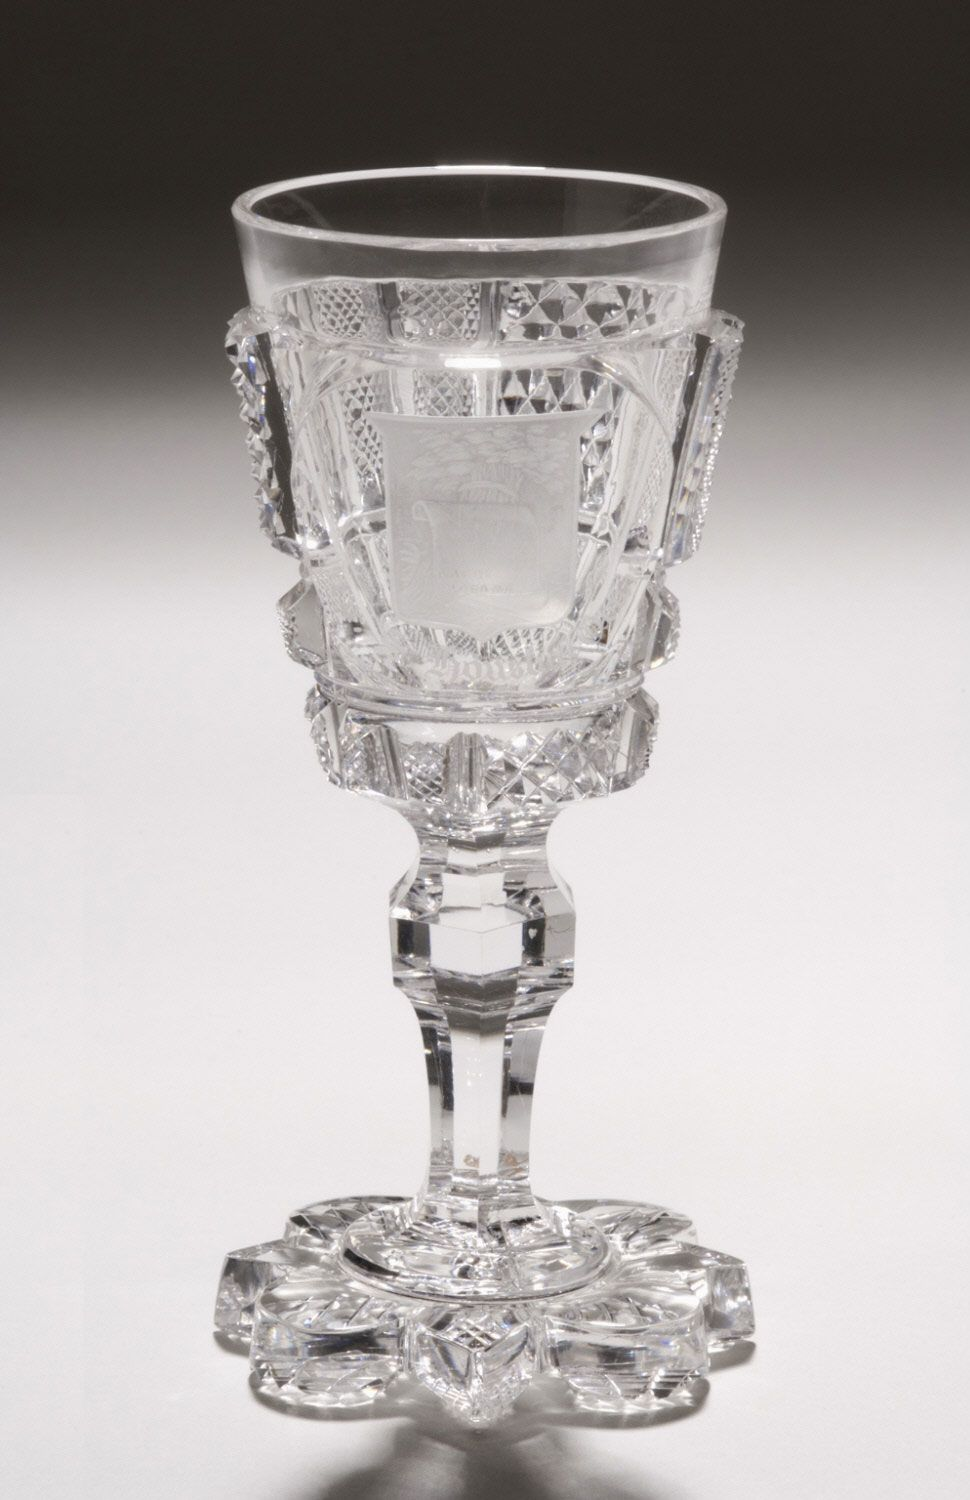 """Dorflinger, 1876-Alabama, American brilliant cut glass, 5"""", 38 pc """"Centennial Set"""" of states crests, displayed at 1876 Centennial Exhibition then donated to Philadelphia Museum of Art."""